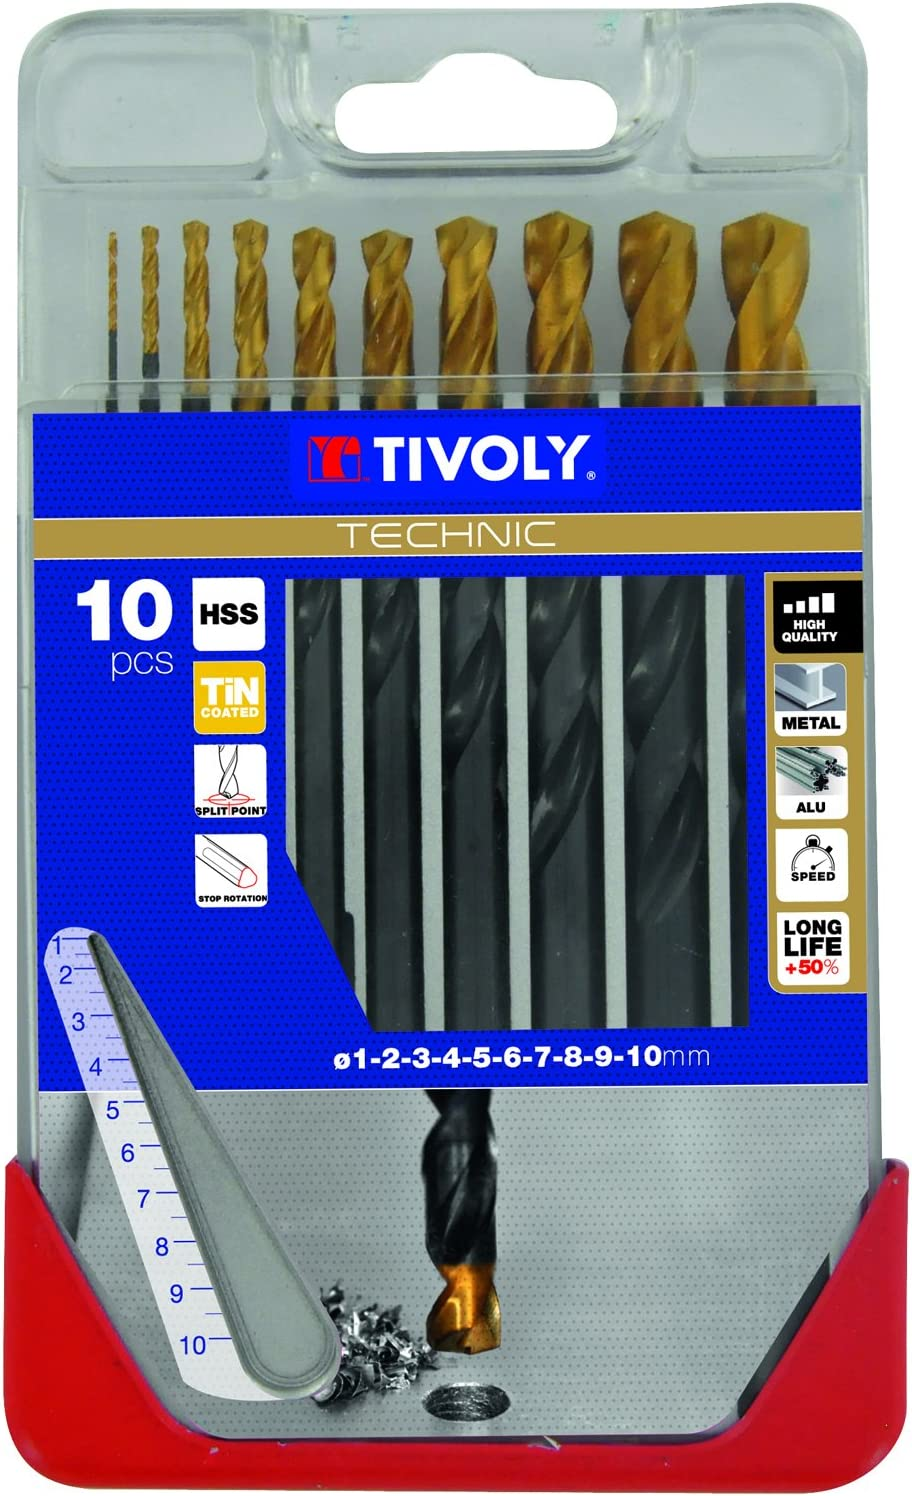 Tivoly A23/ Diameter of 2, 3, 4, 5, 6, 7, 8, 10/mm /Pack of 8/Drill Bits for Metal DIN 338/HSS TiN